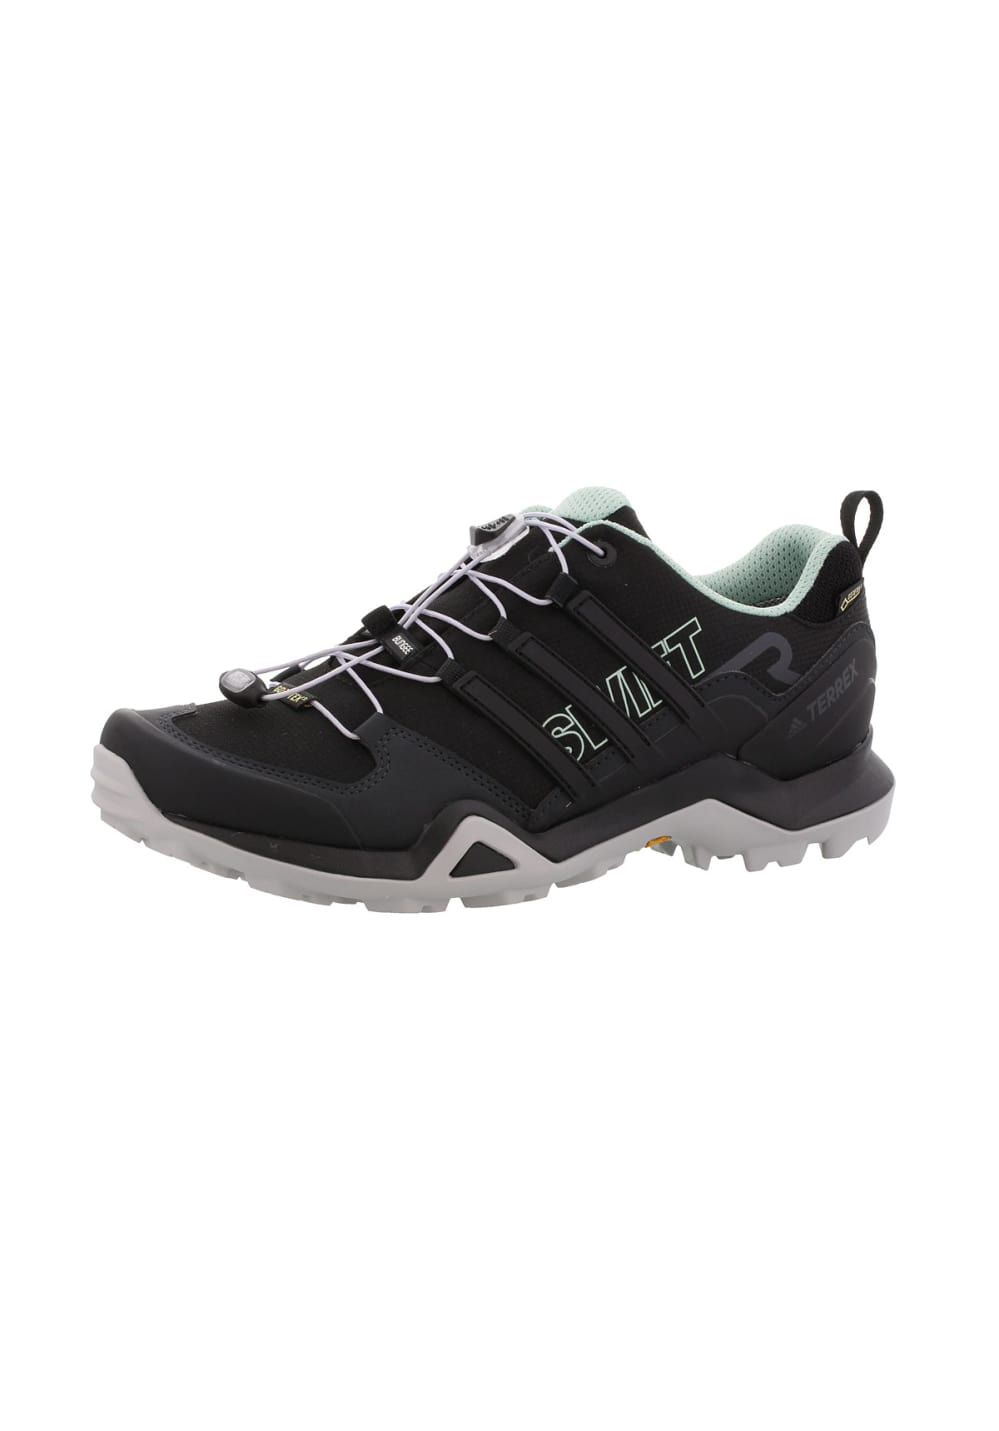 lowest price 90cf6 812cd adidas TERREX Terrex Swift R2 GTX - Outdoor shoes for Women - Black